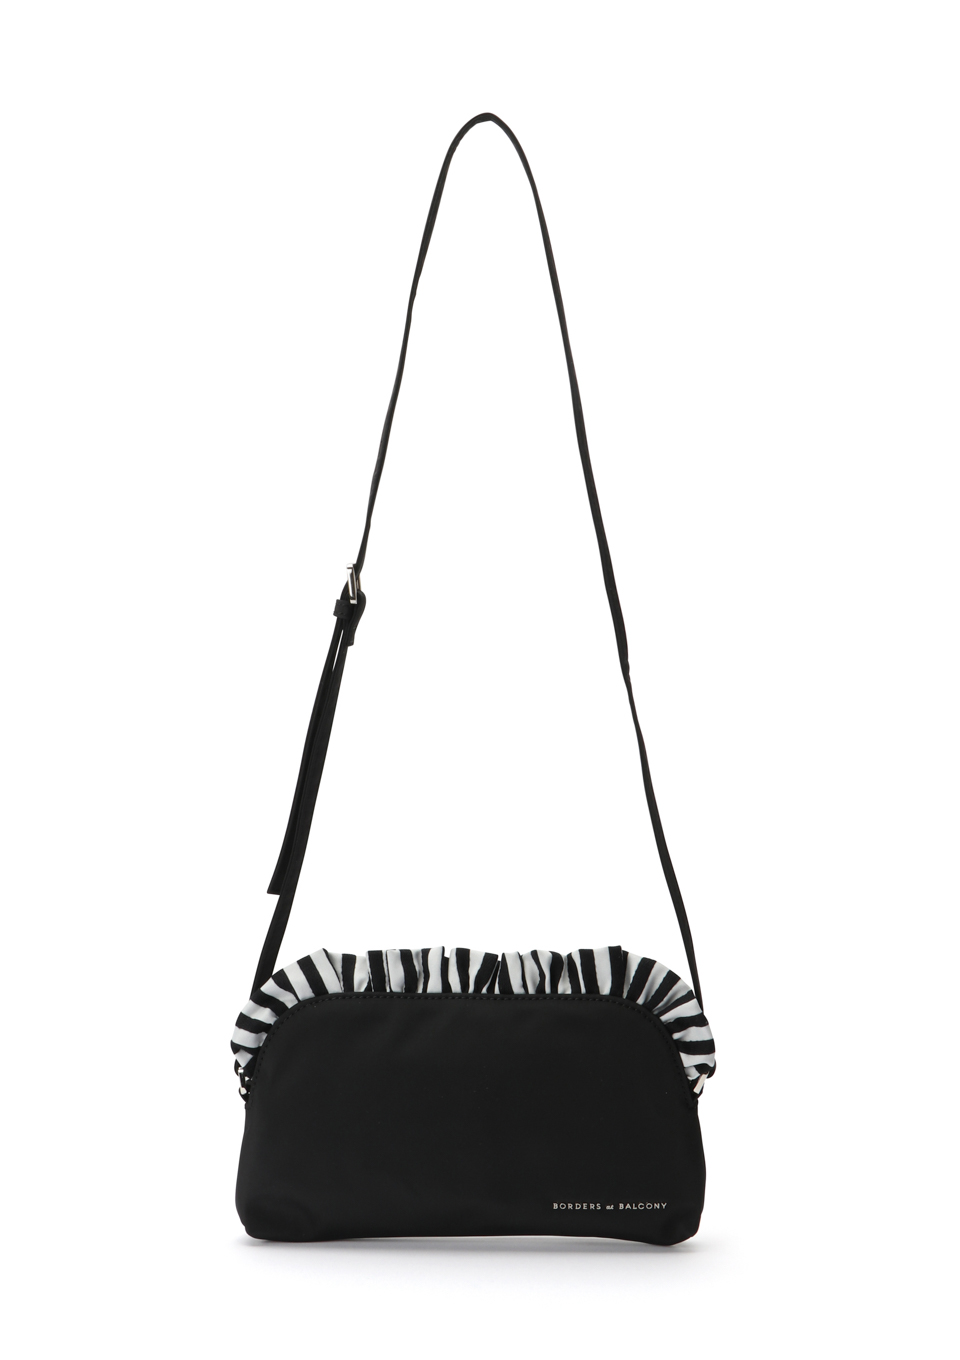 CITY POLLY CROSS BODY